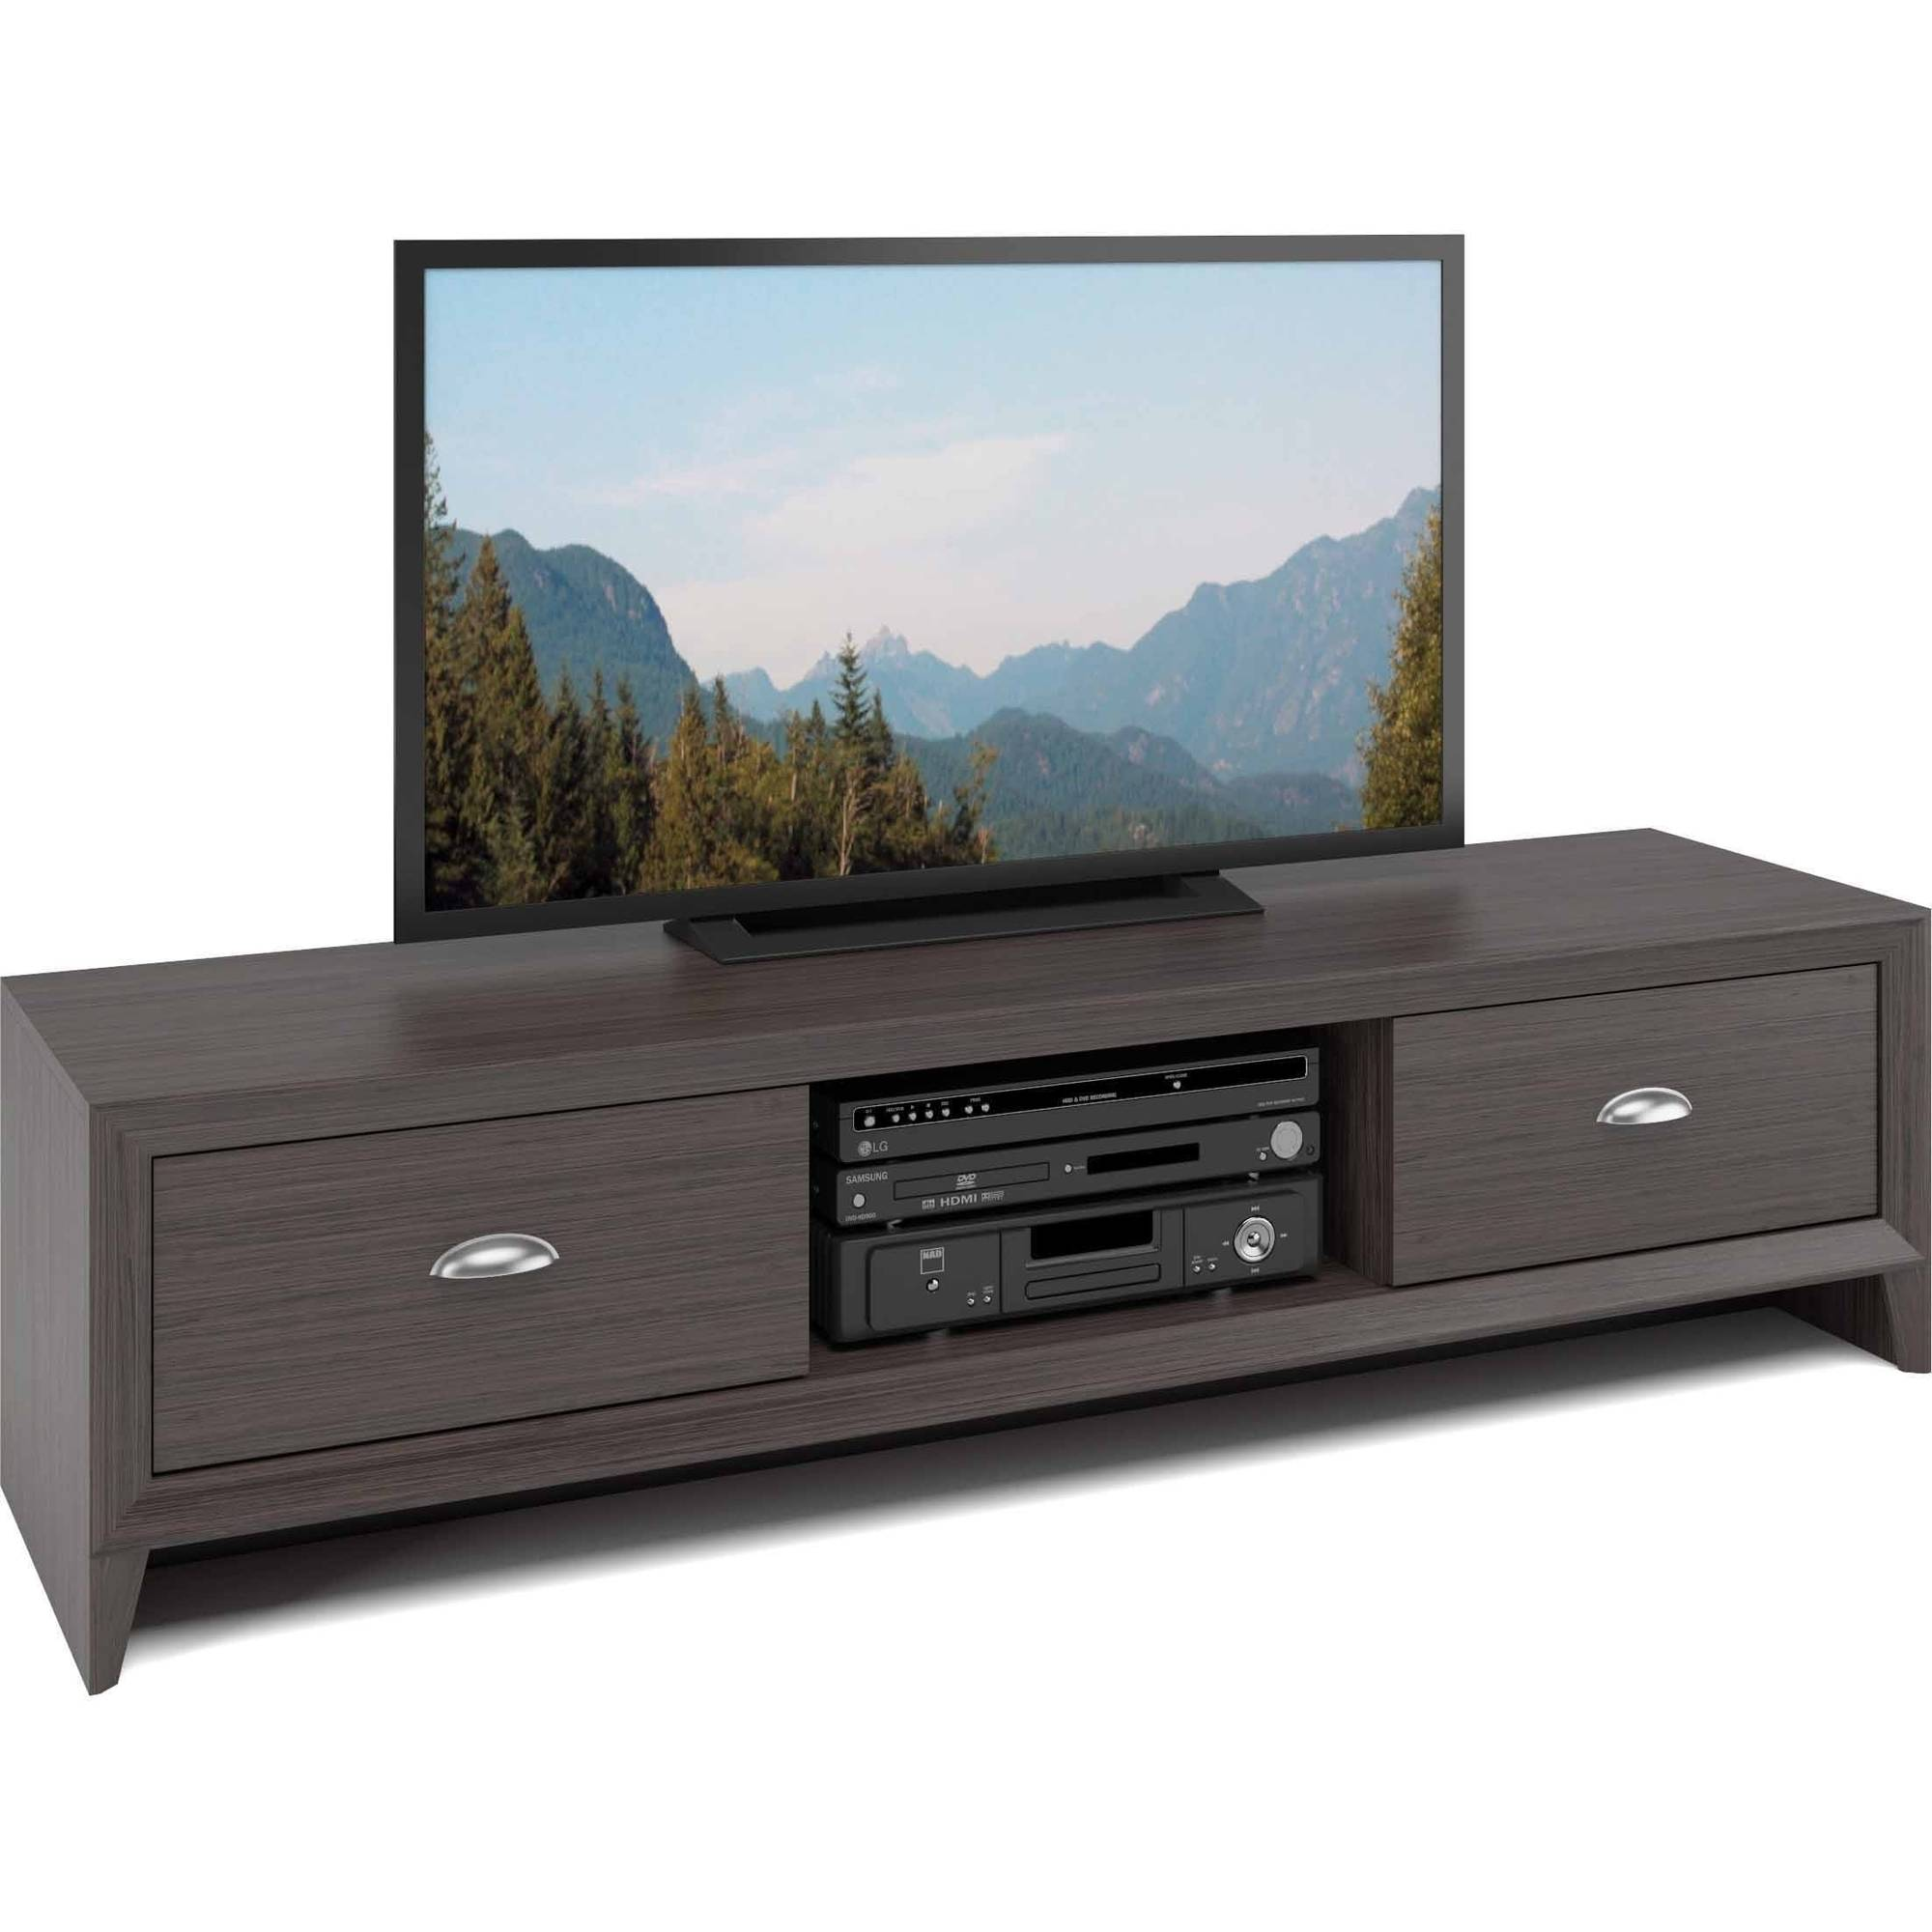 CorLiving TLK-871-B Lakewood TV Bench in Modern Wenge Finish for TVs up to 60""